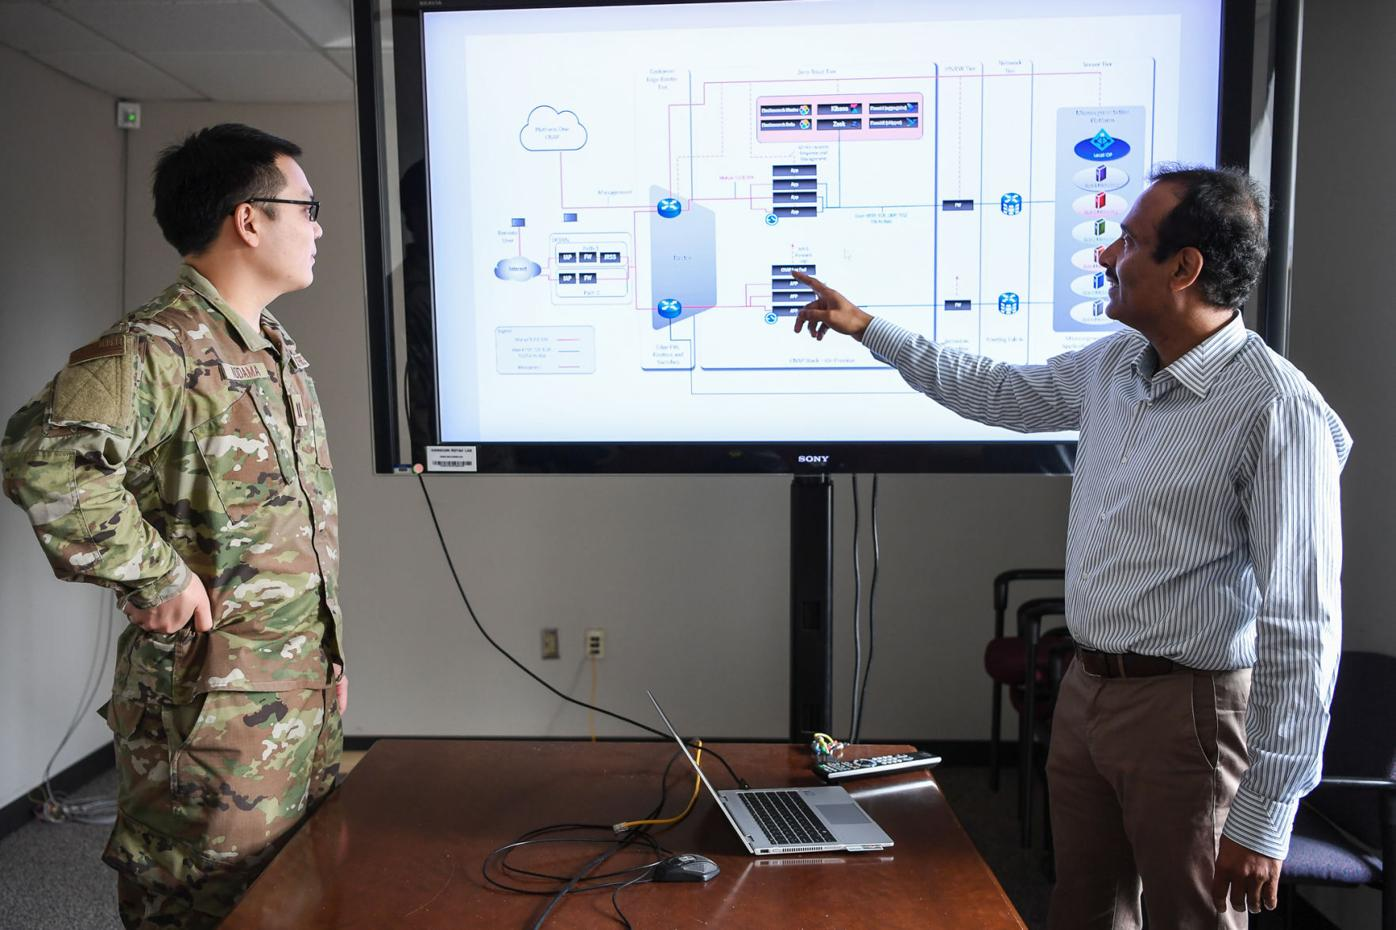 Raju Ranjan, an engineer from the AFNet Sustainment and Operations Branch